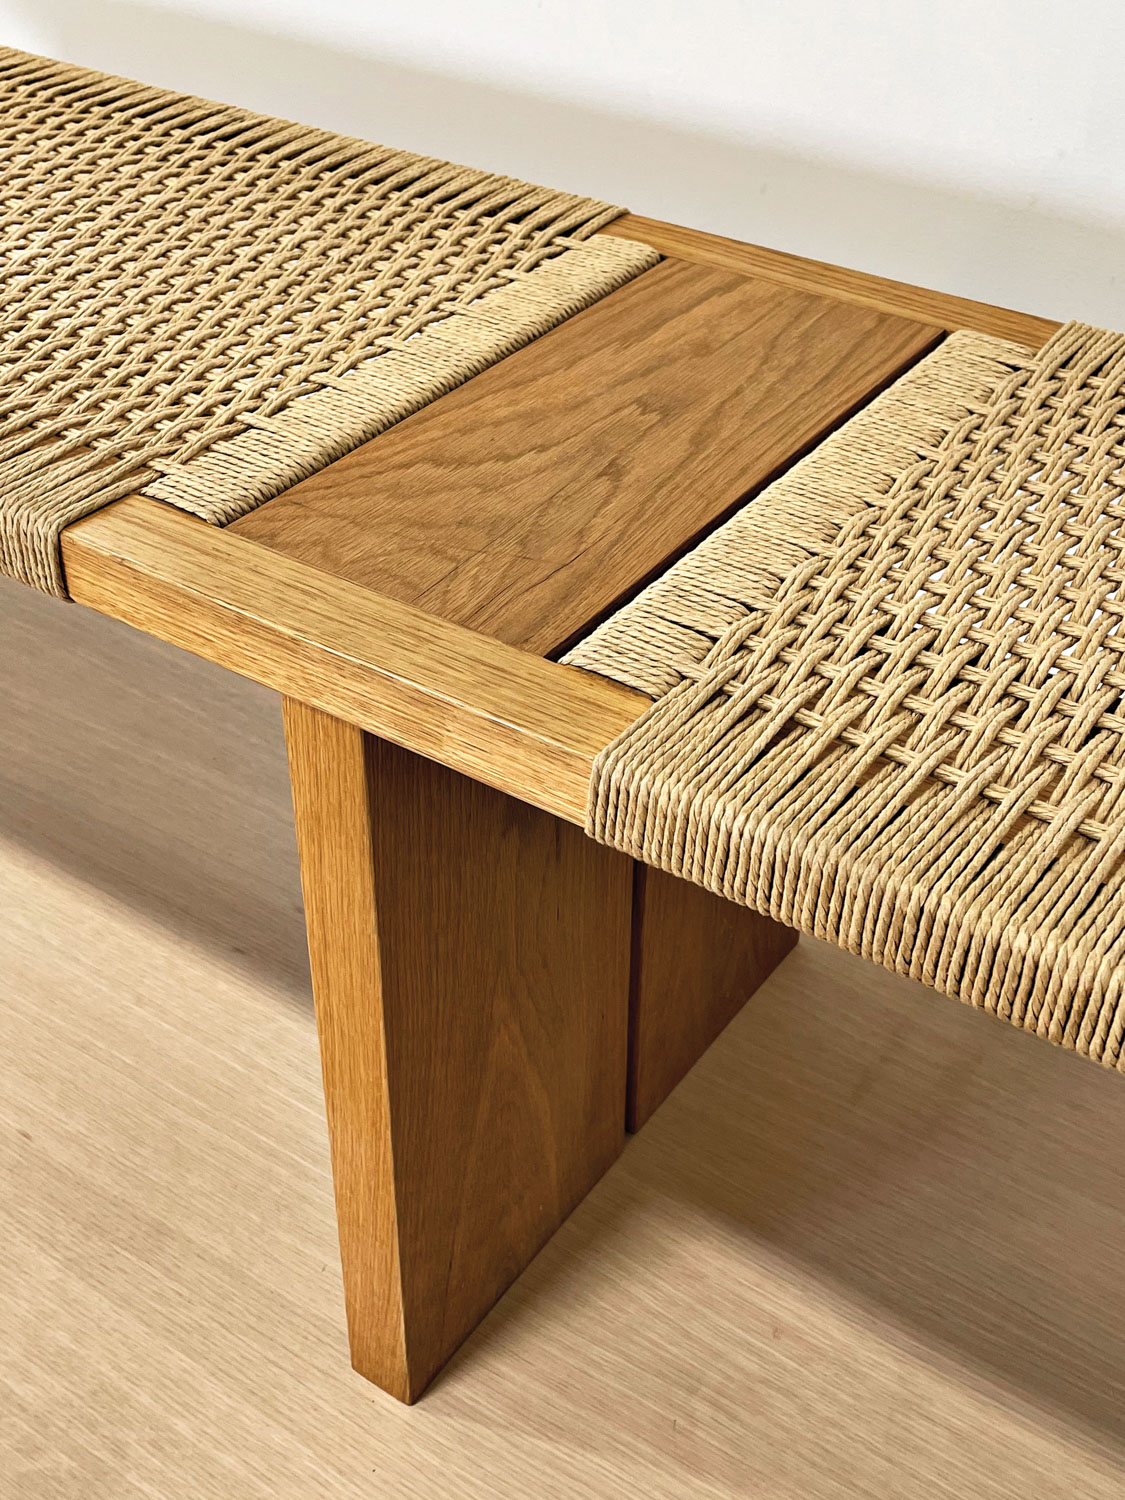 Wooden bench with weaving